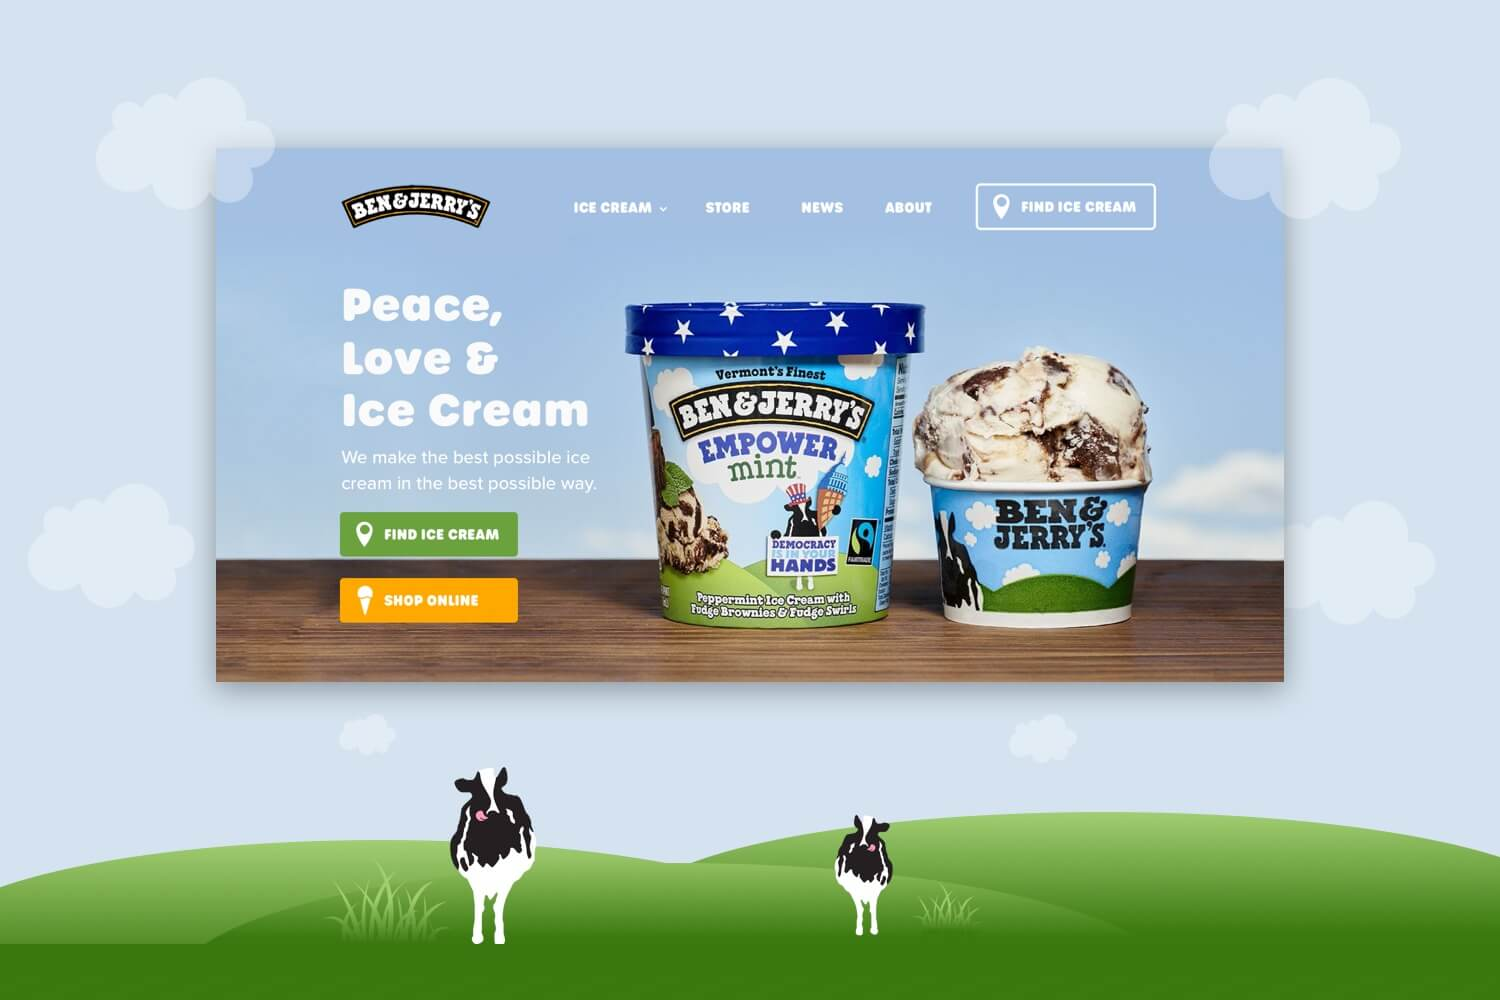 Redesigned header of Ben & Jerry's website.